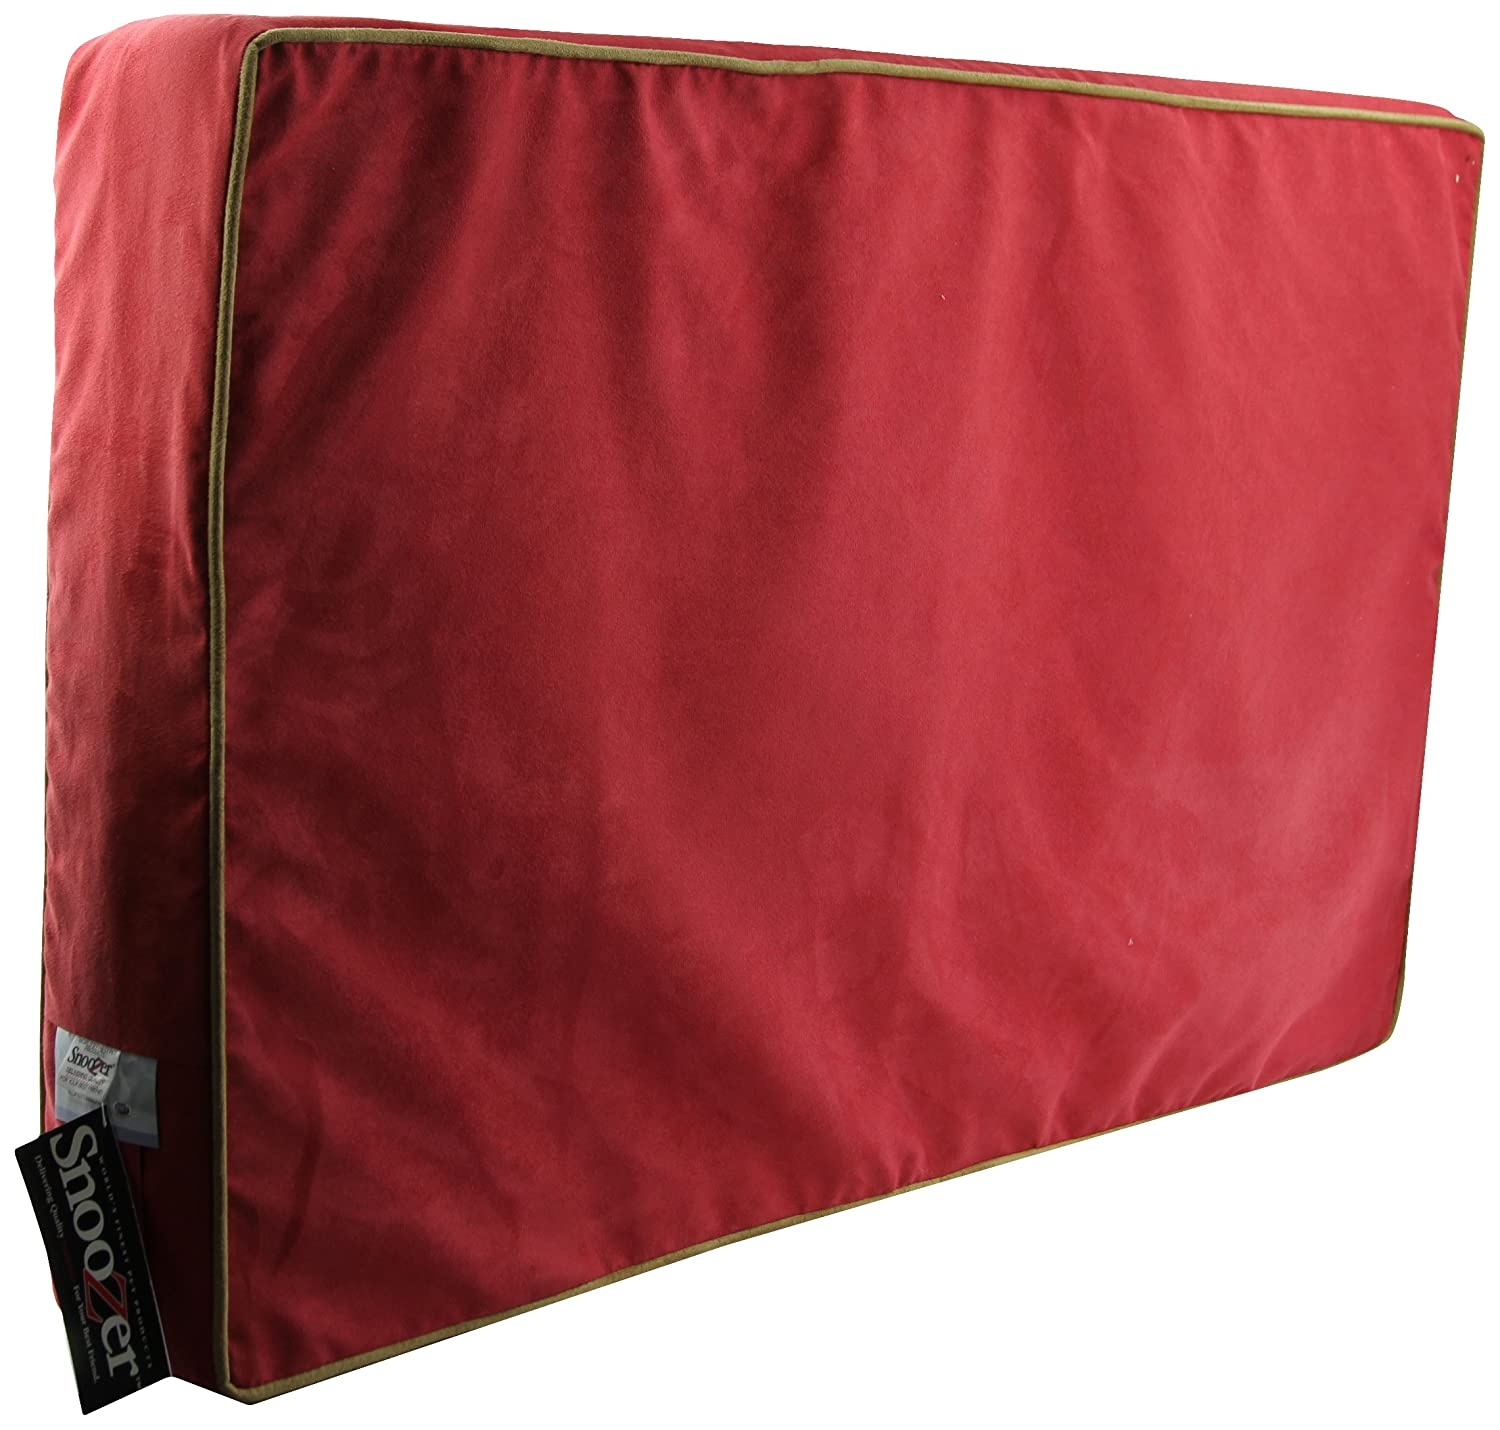 Red Camel X-Large Red Camel X-Large Snoozer 95888 X-Large Outlast Dog Bed Sleep System 5-Inch Thick, Red Camel